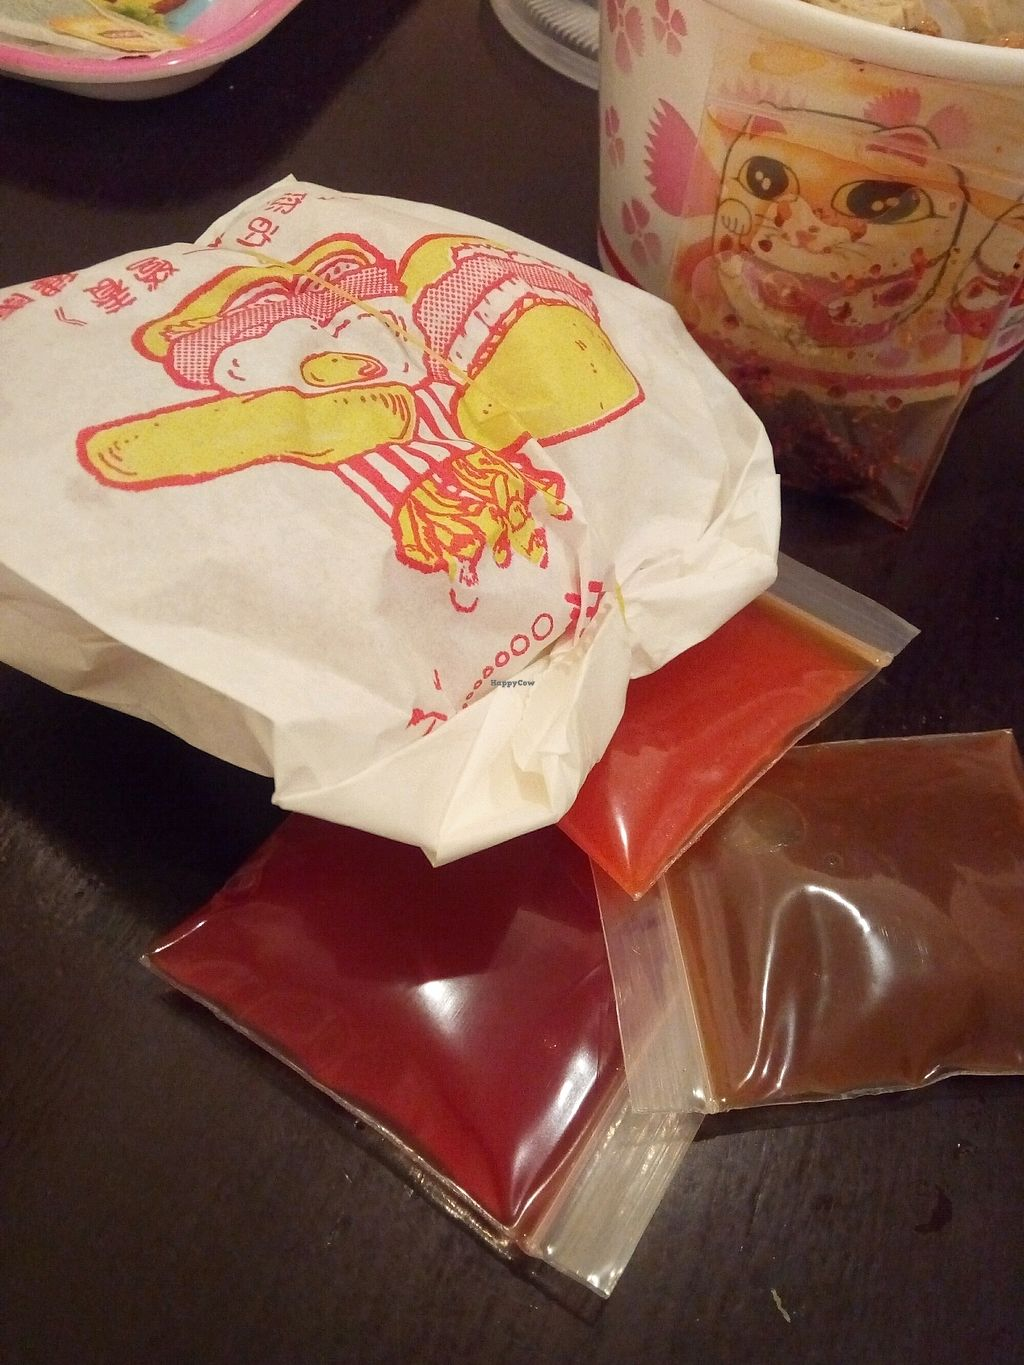 """Photo of Hsin Hao Vegetarian  by <a href=""""/members/profile/TenParamitas"""">TenParamitas</a> <br/>my take away burger from hsin hao <br/> March 21, 2018  - <a href='/contact/abuse/image/65323/373864'>Report</a>"""